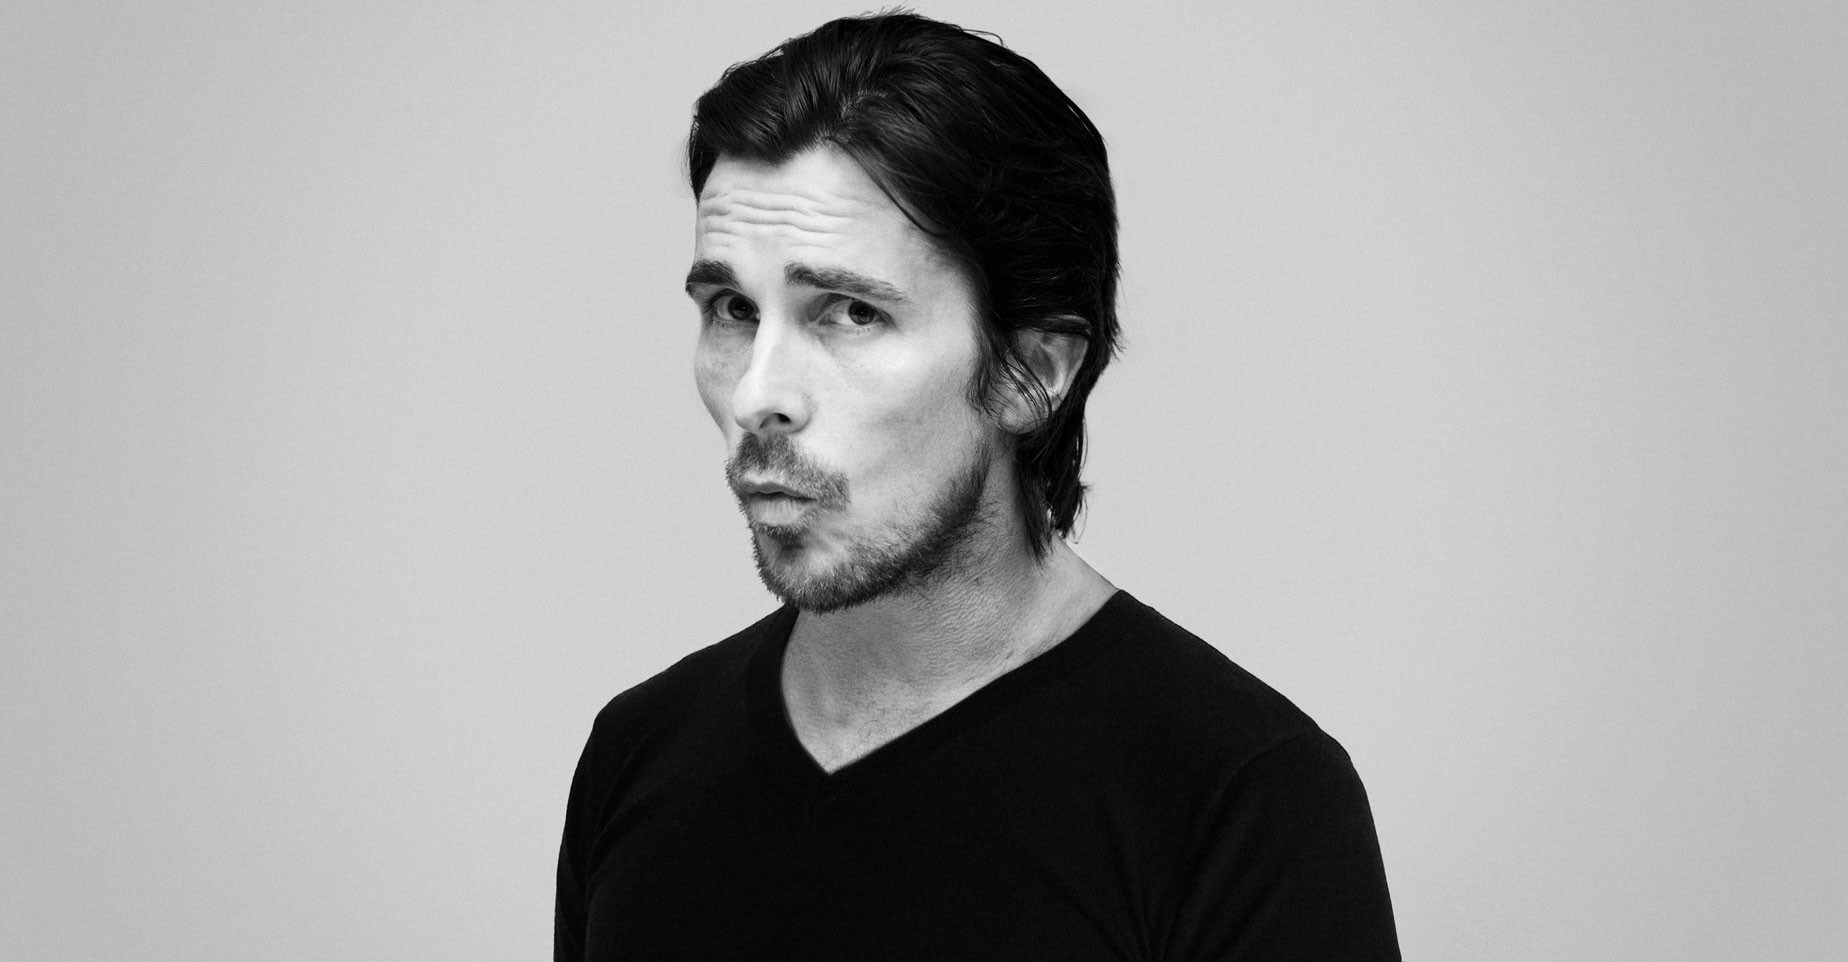 richest celebrity in the world 2018, christianbale